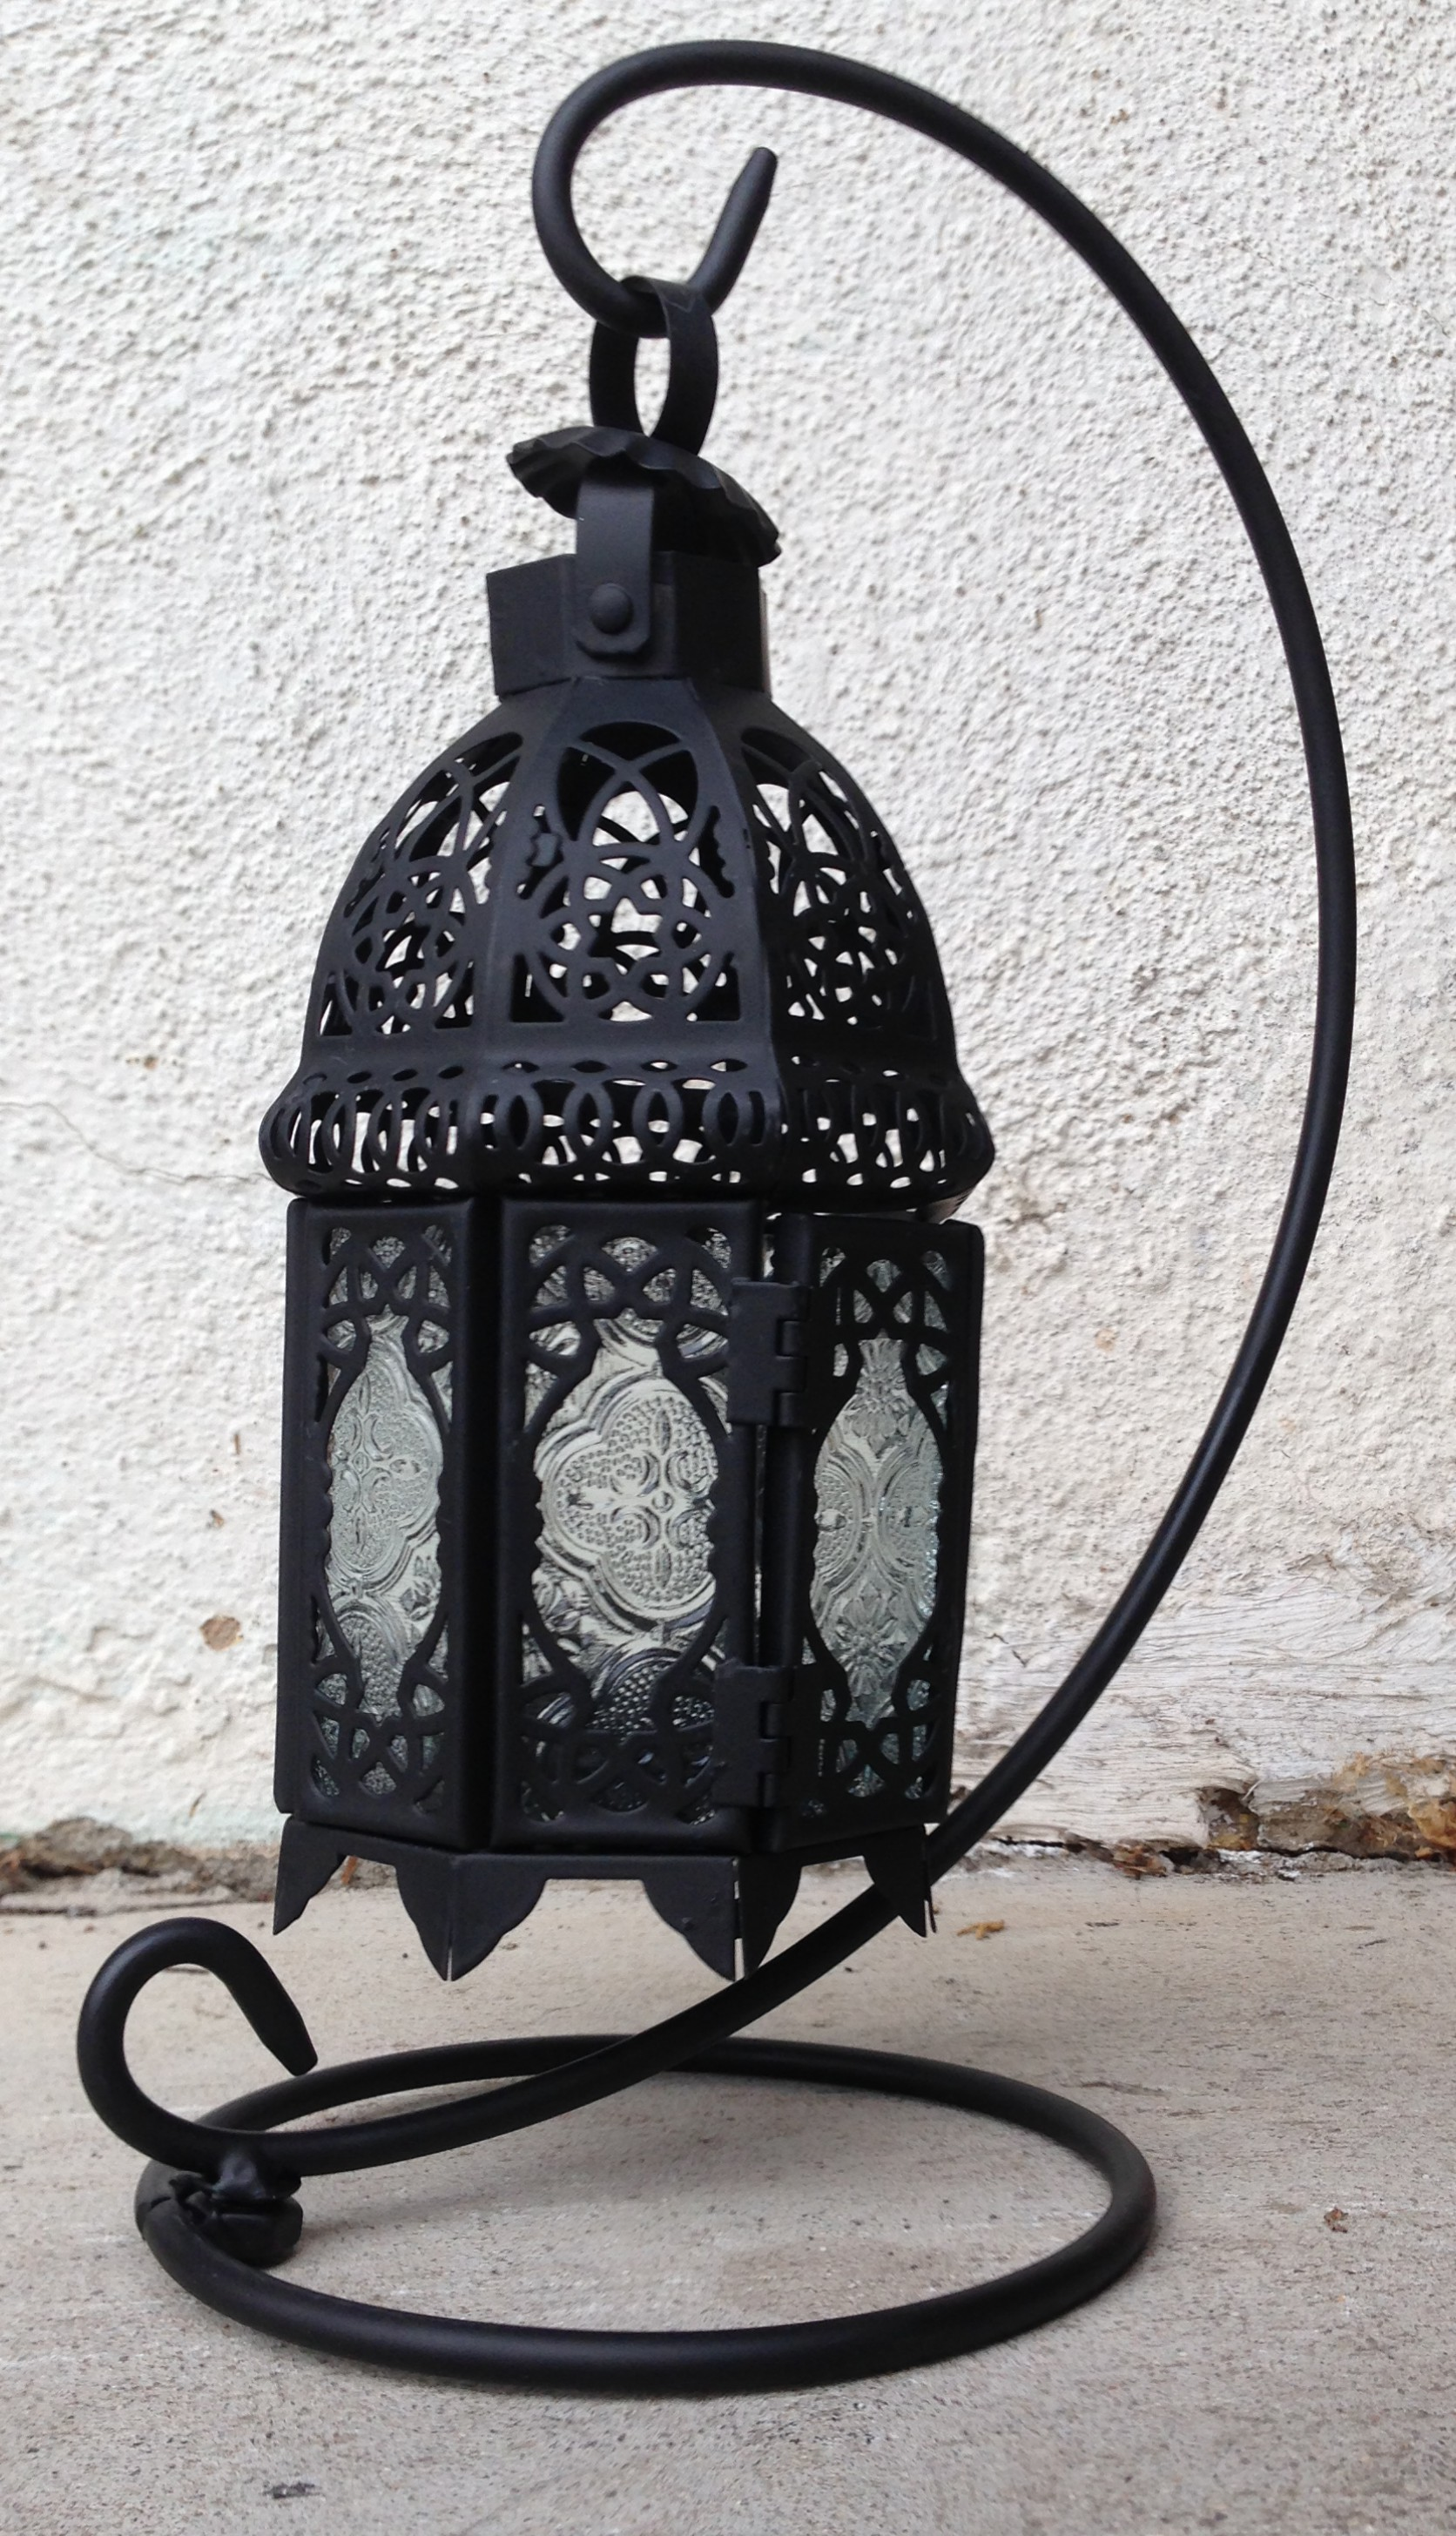 #4 Moroccan style hanging lantern (small)